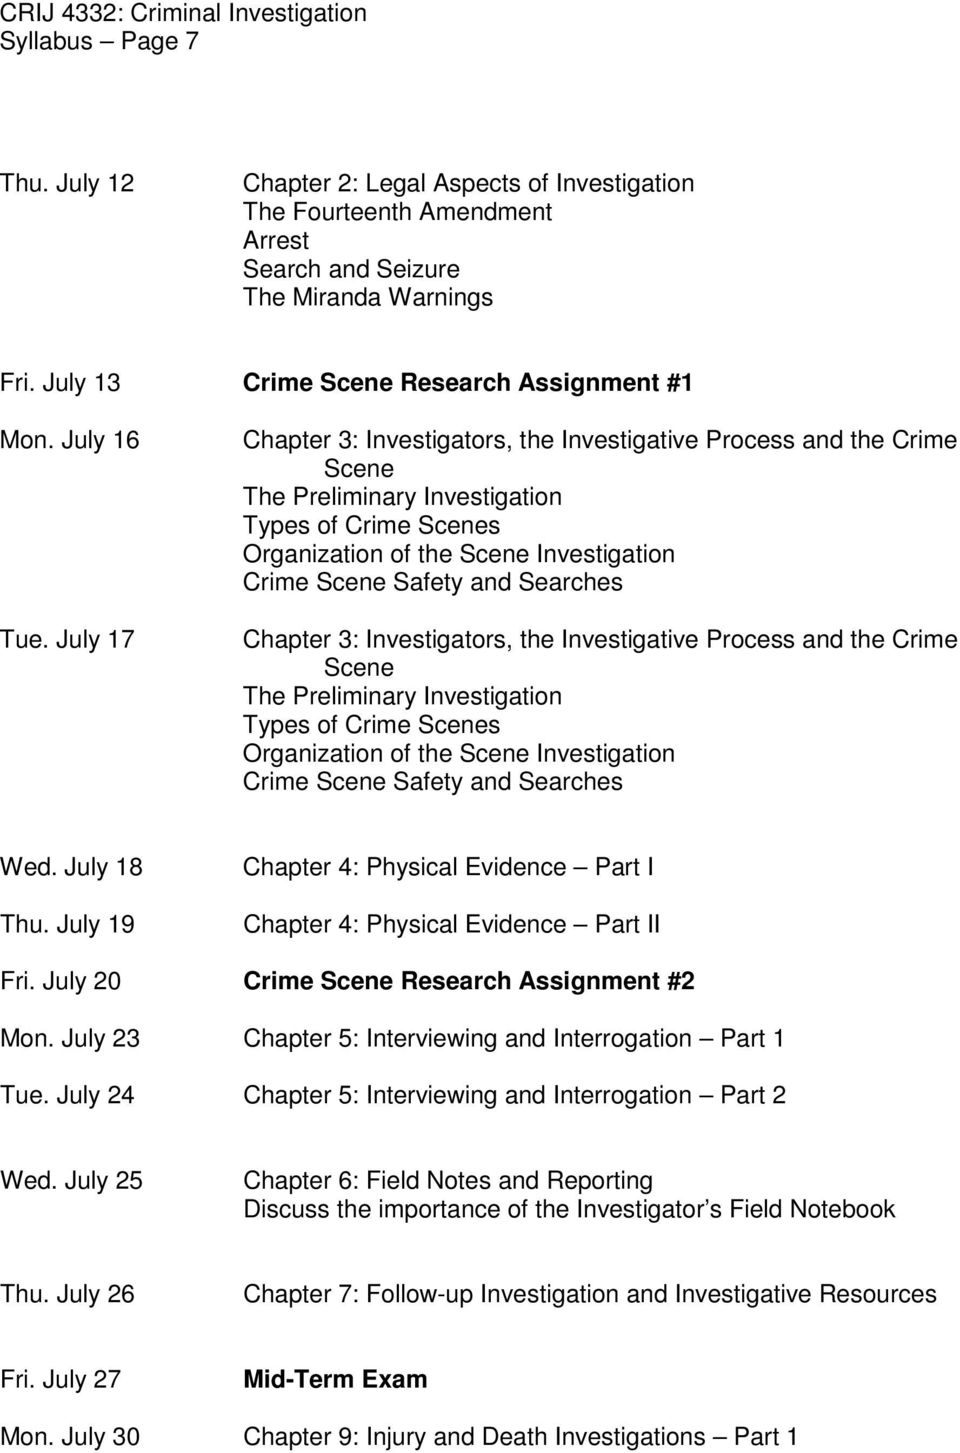 July 17 Chapter 3: Investigators, the Investigative Process and the Crime Scene The Preliminary Investigation Types of Crime Scenes Organization of the Scene Investigation Crime Scene Safety and